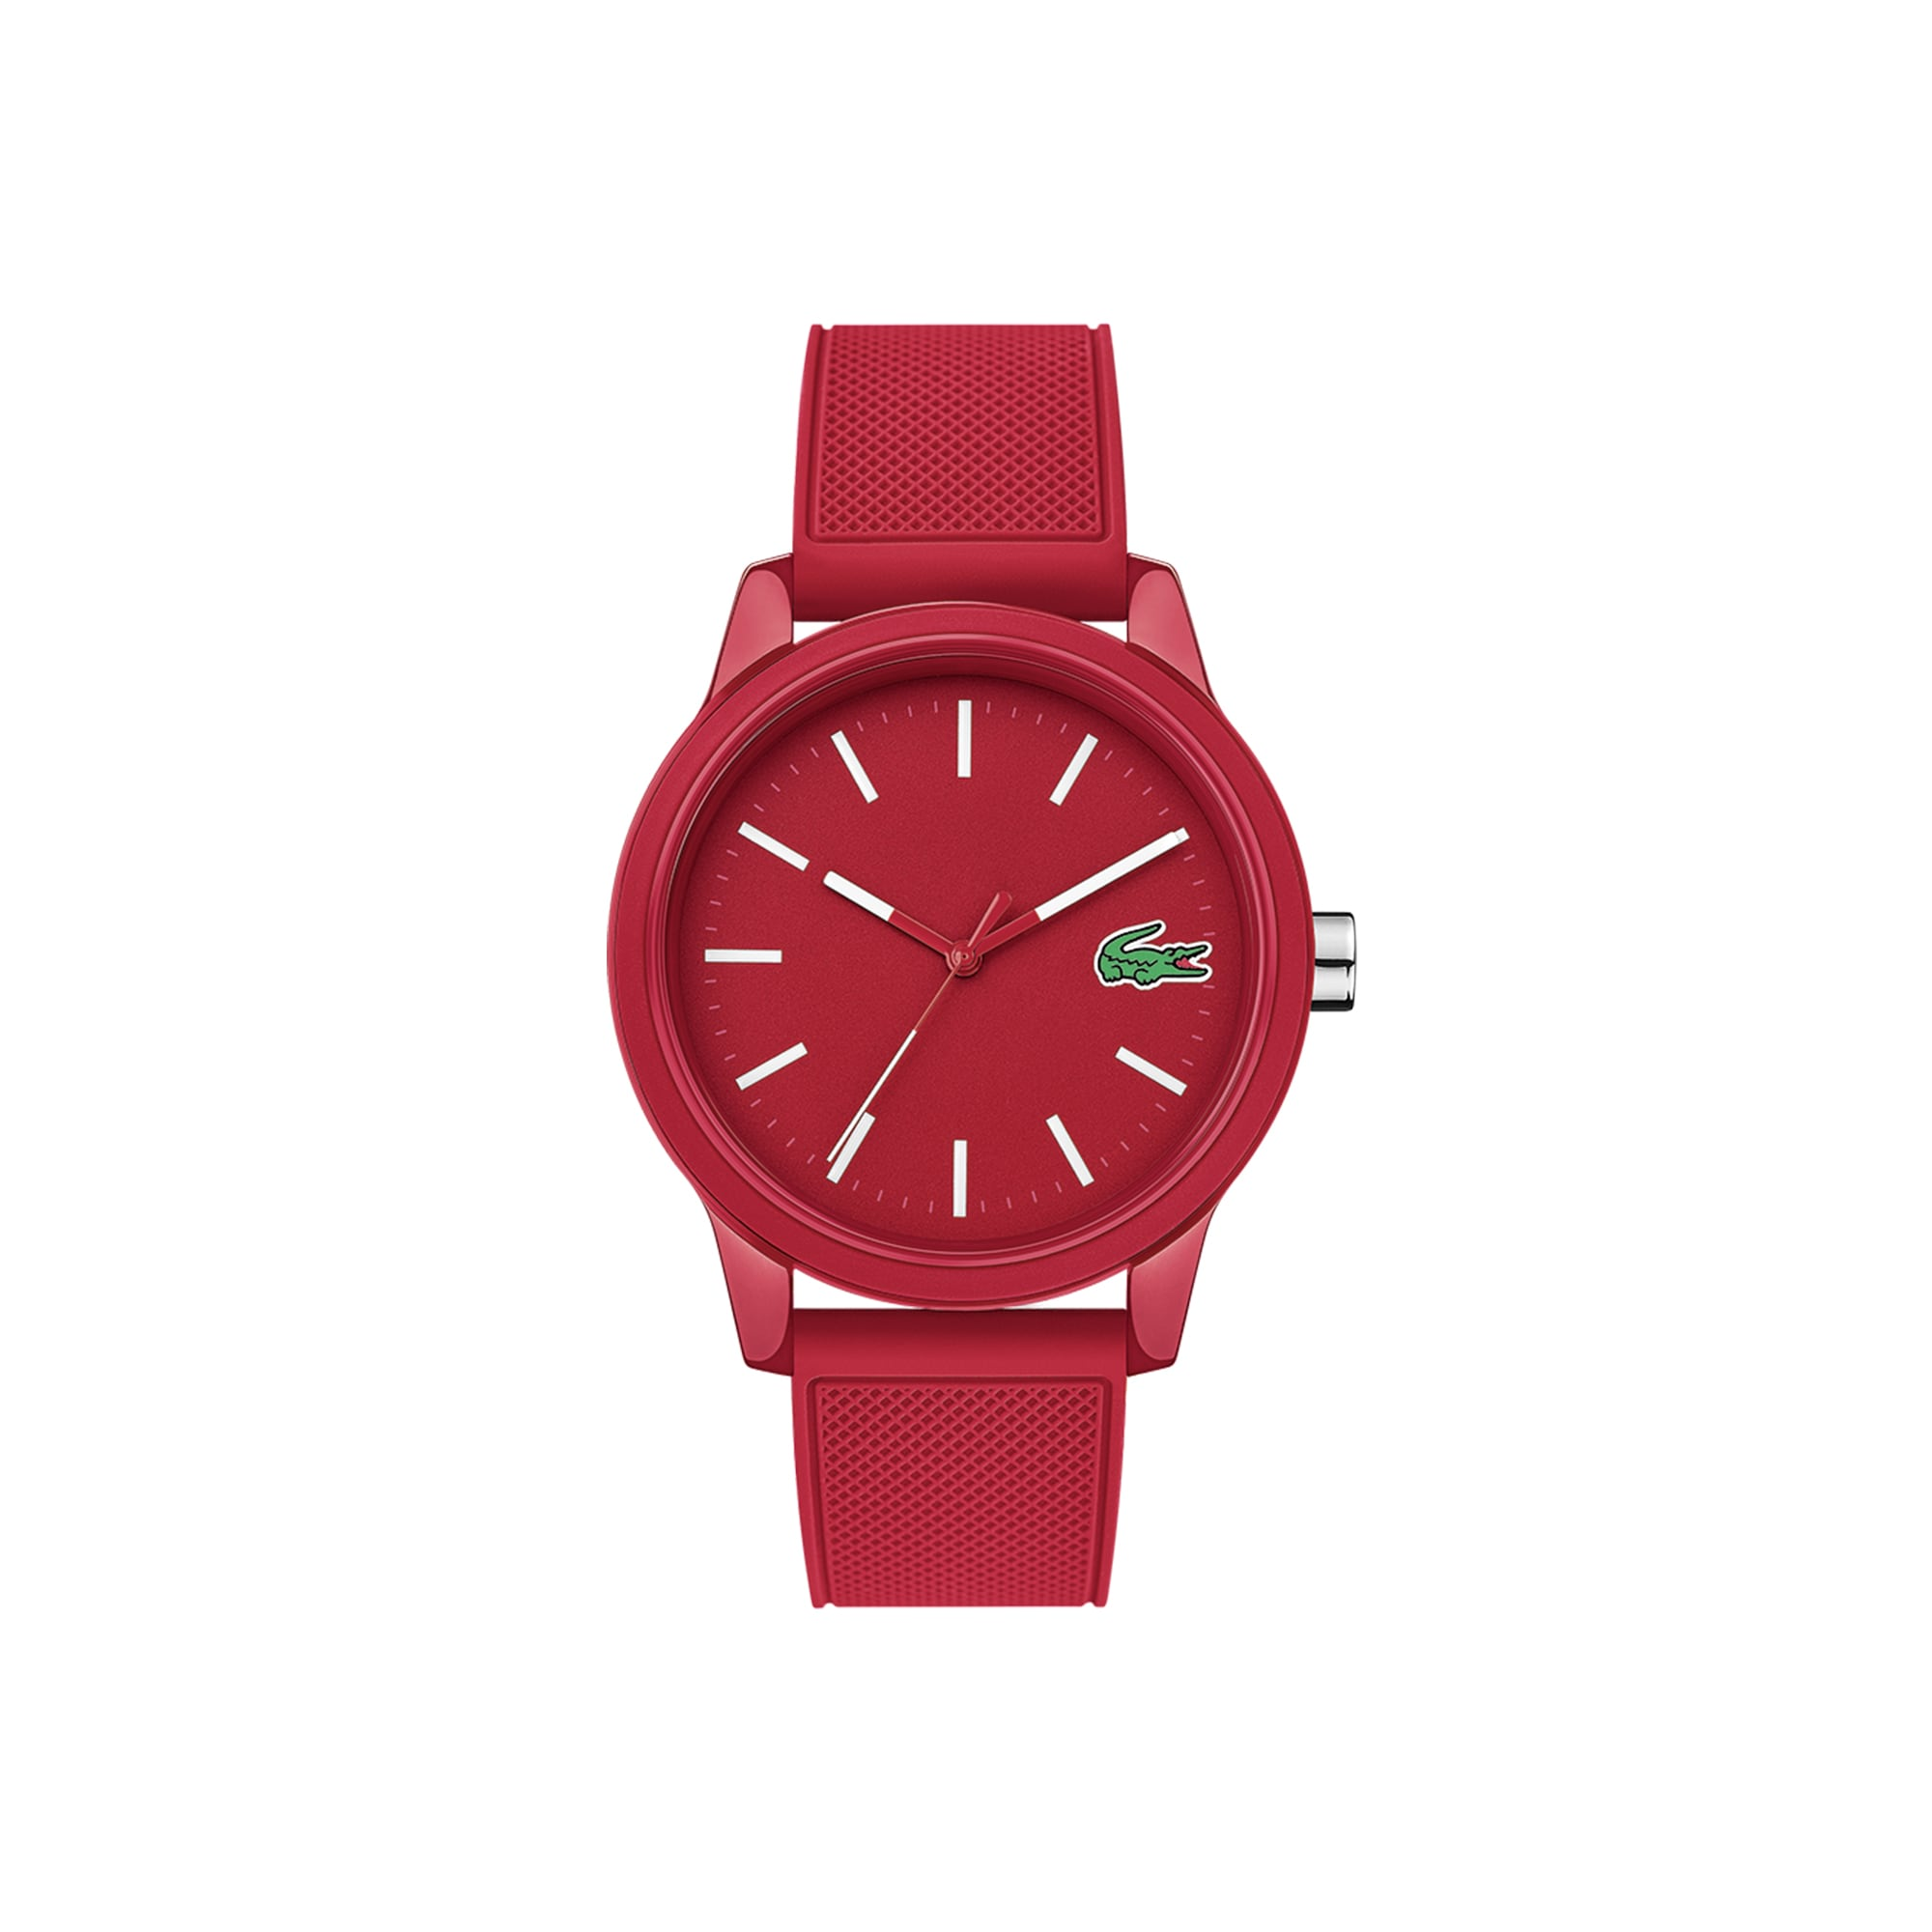 Men's Lacoste.12.12 Red Chronograph Watch